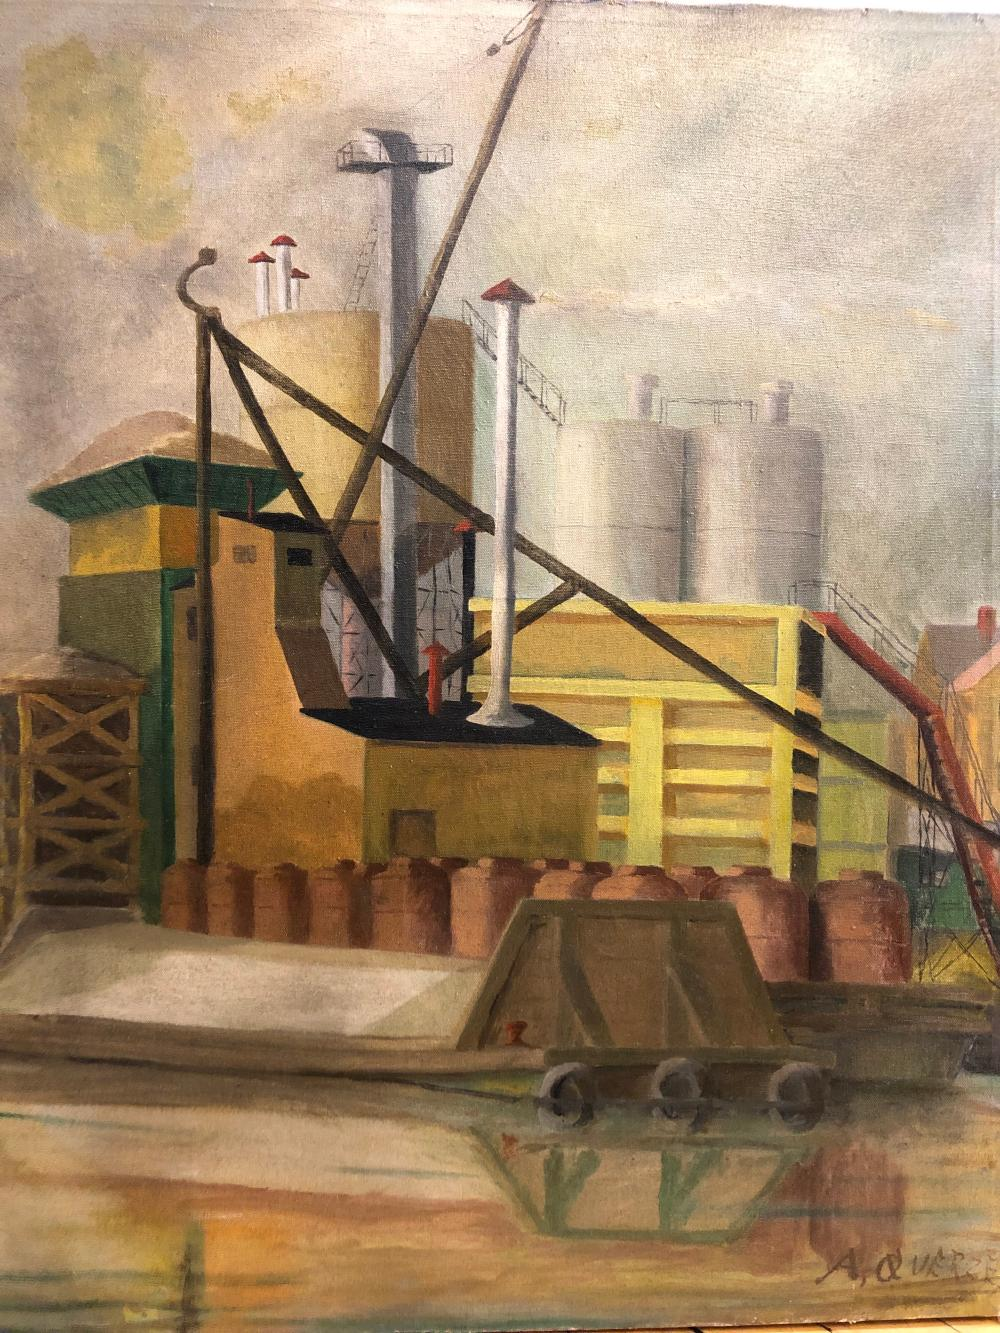 A. Querze ~ Original Industrial Depression era painting